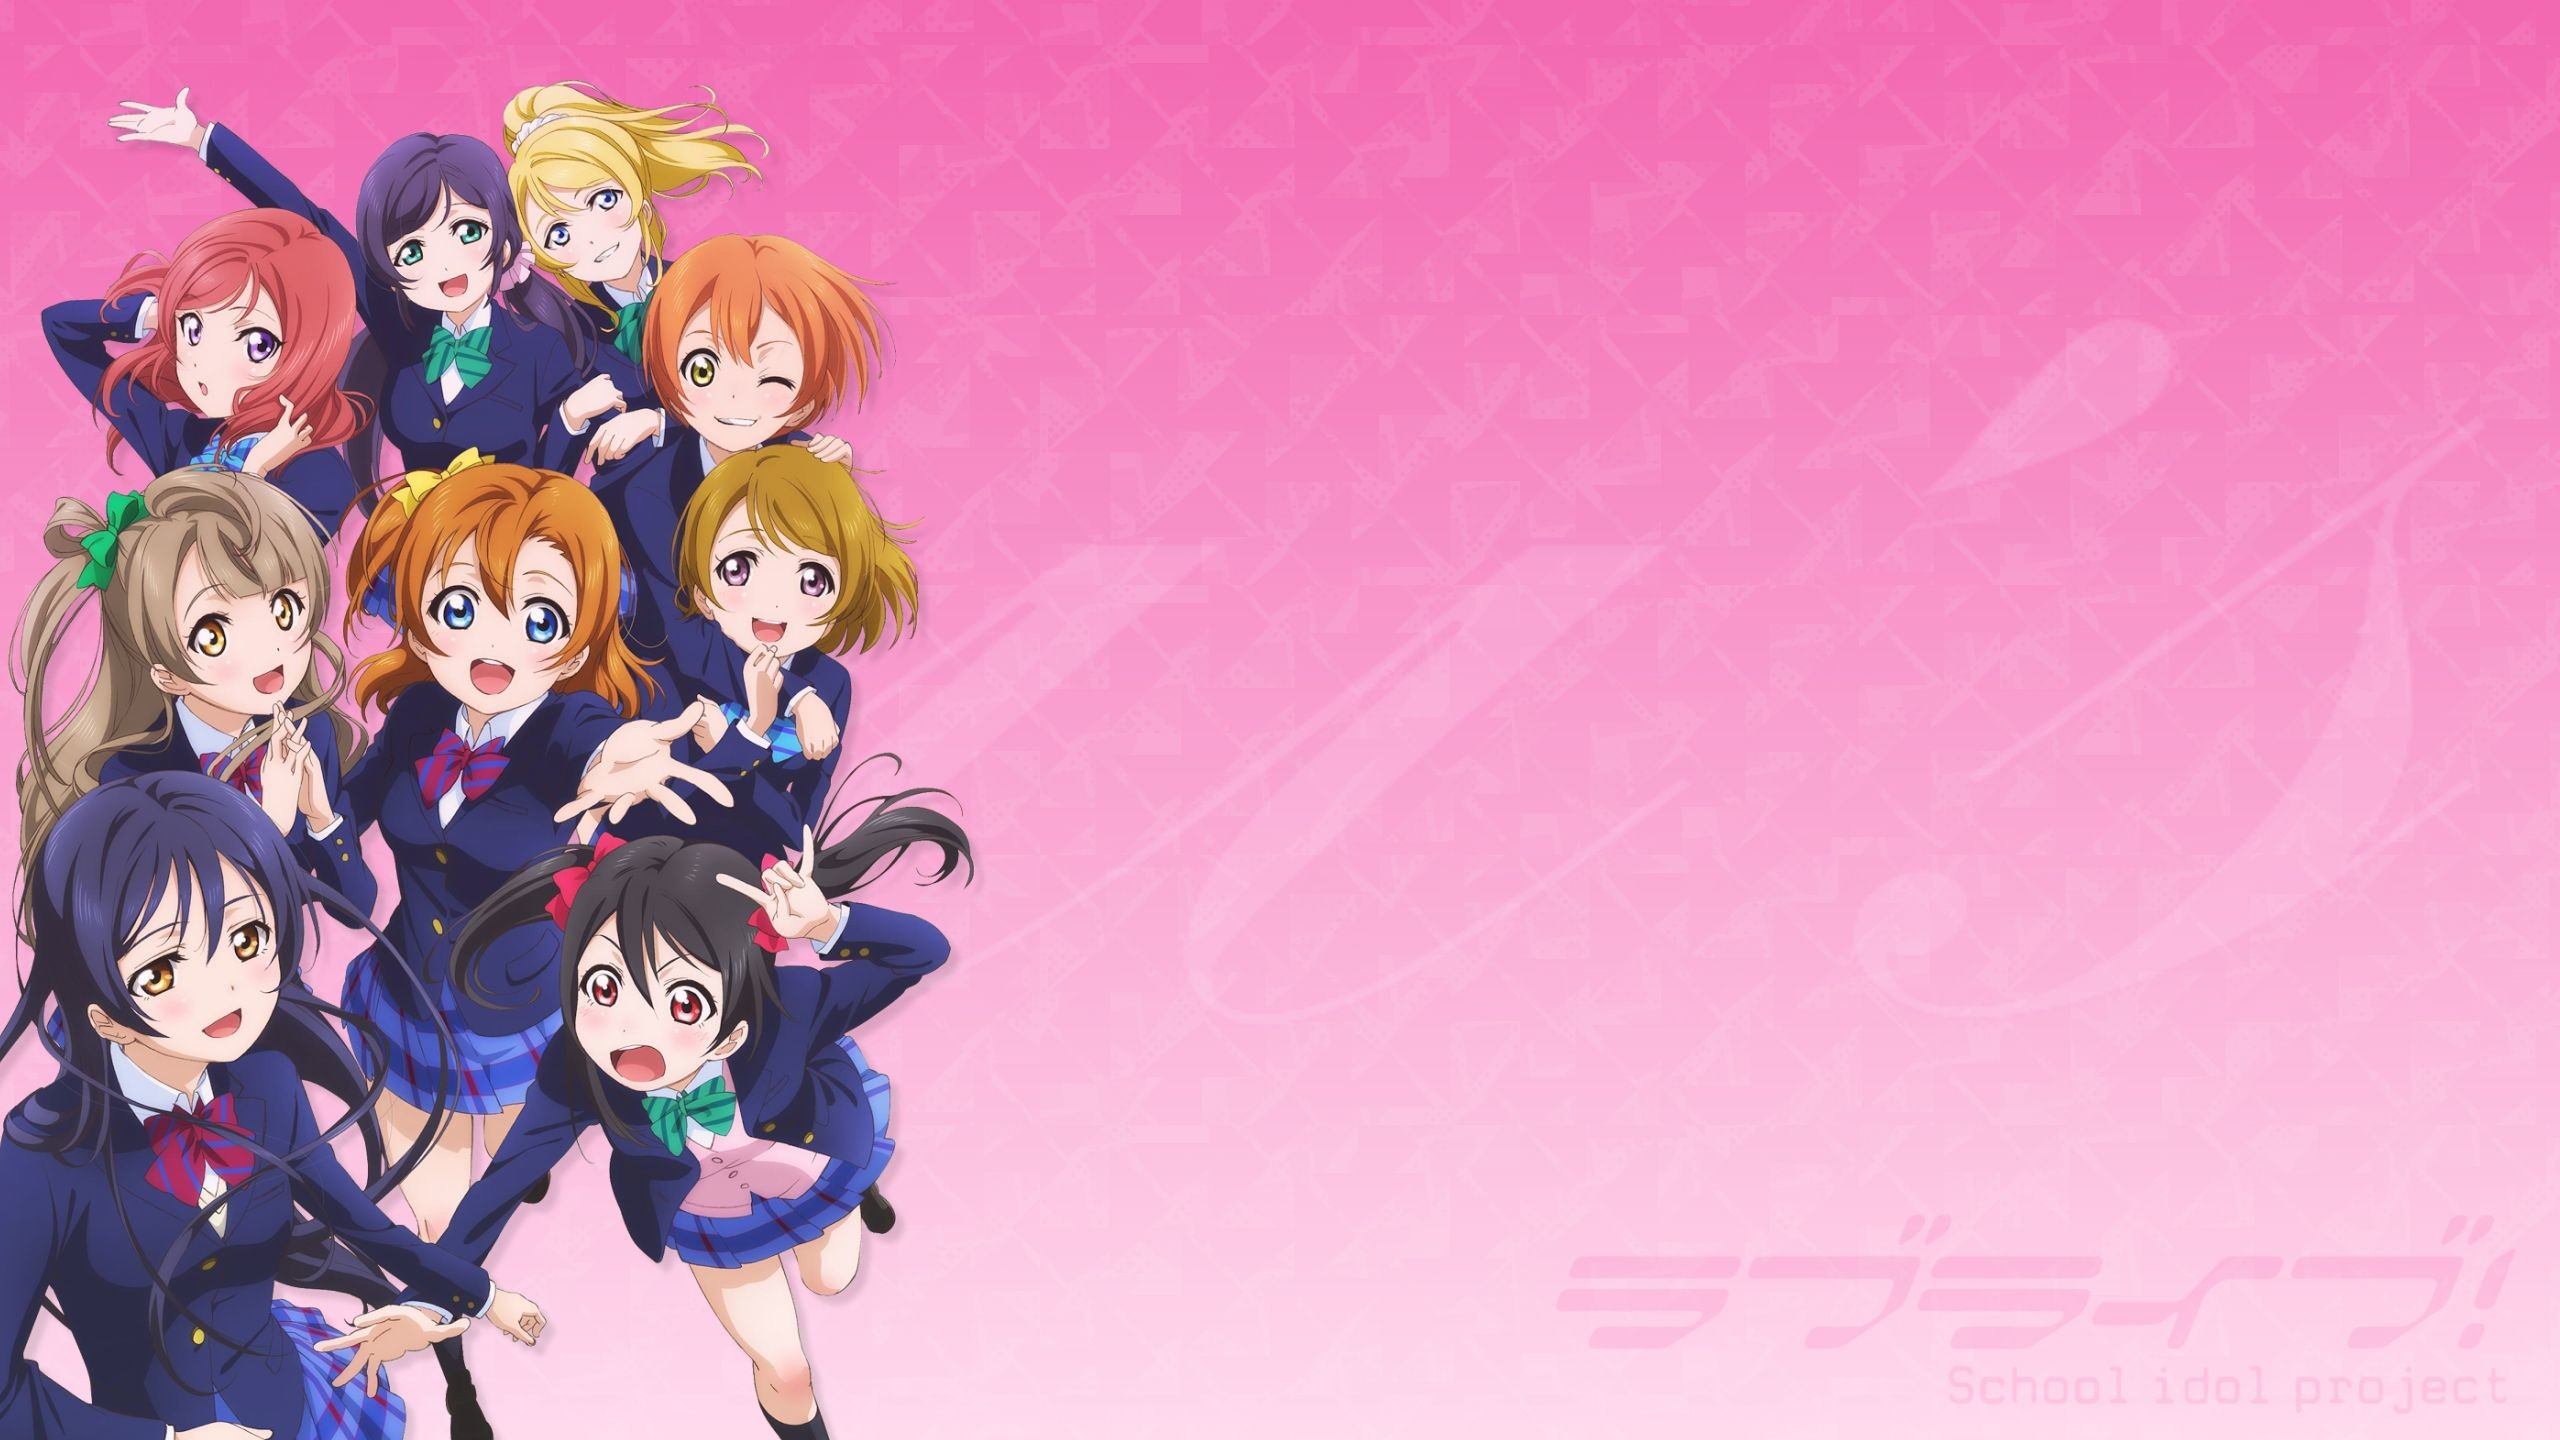 Res: 2560x1440, Tree of Love Live Wallpaper Android Apps on Google Play 1920×1080 Love Live  Wallpapers